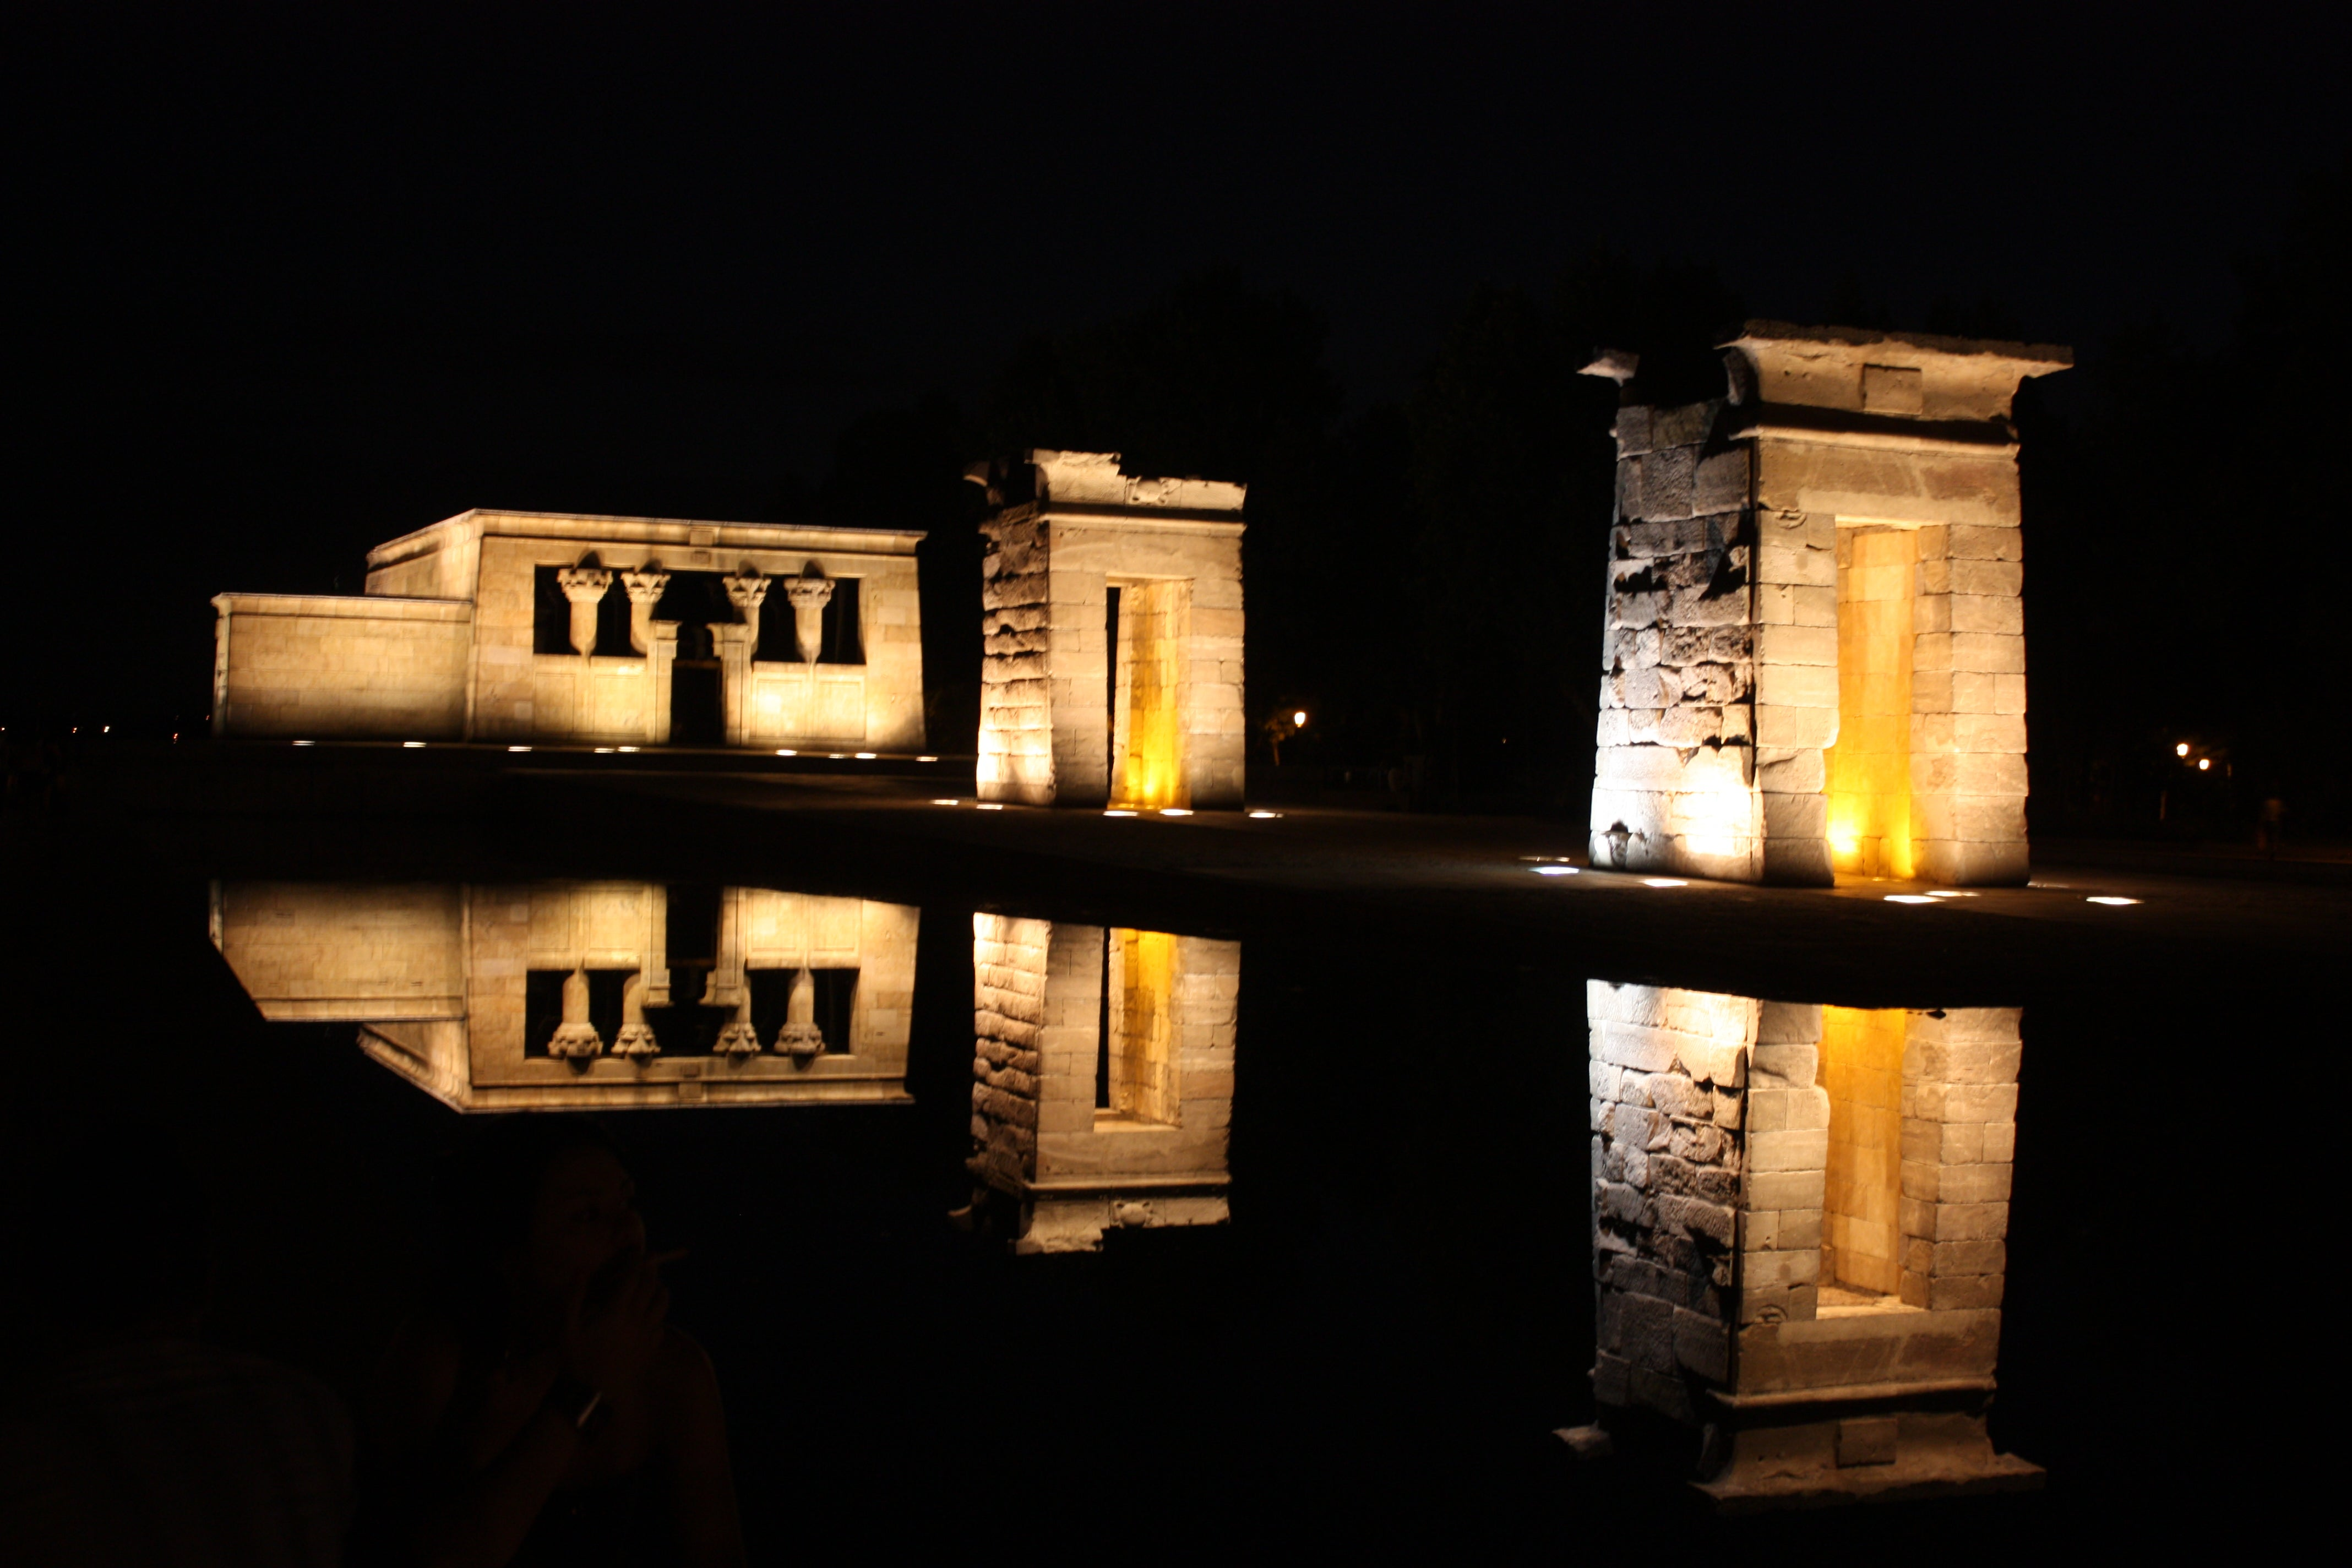 Night in Temple of Debod